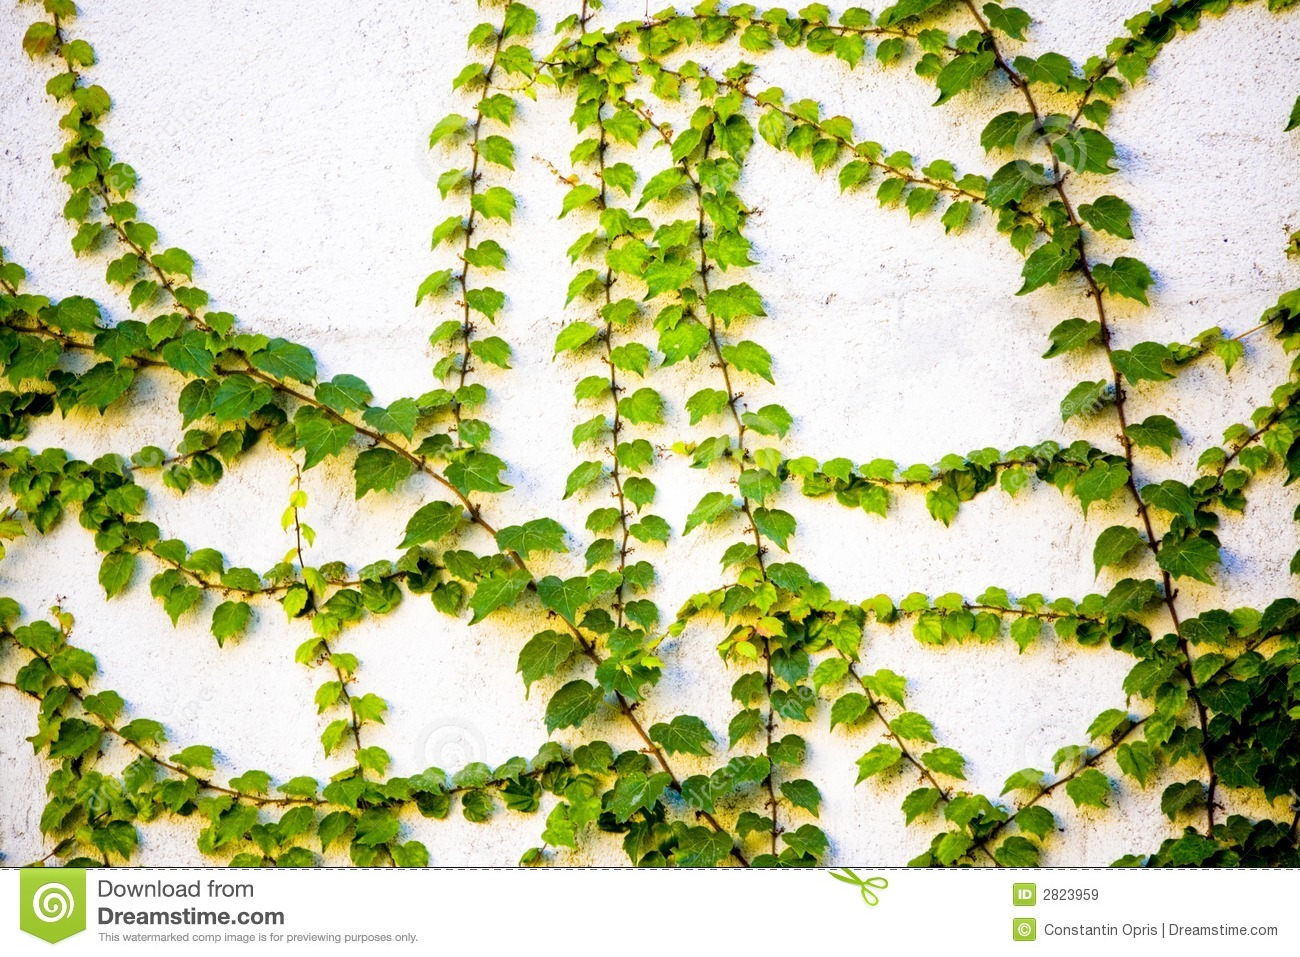 ... of a number of green leafy vines growing on a white concrete wall